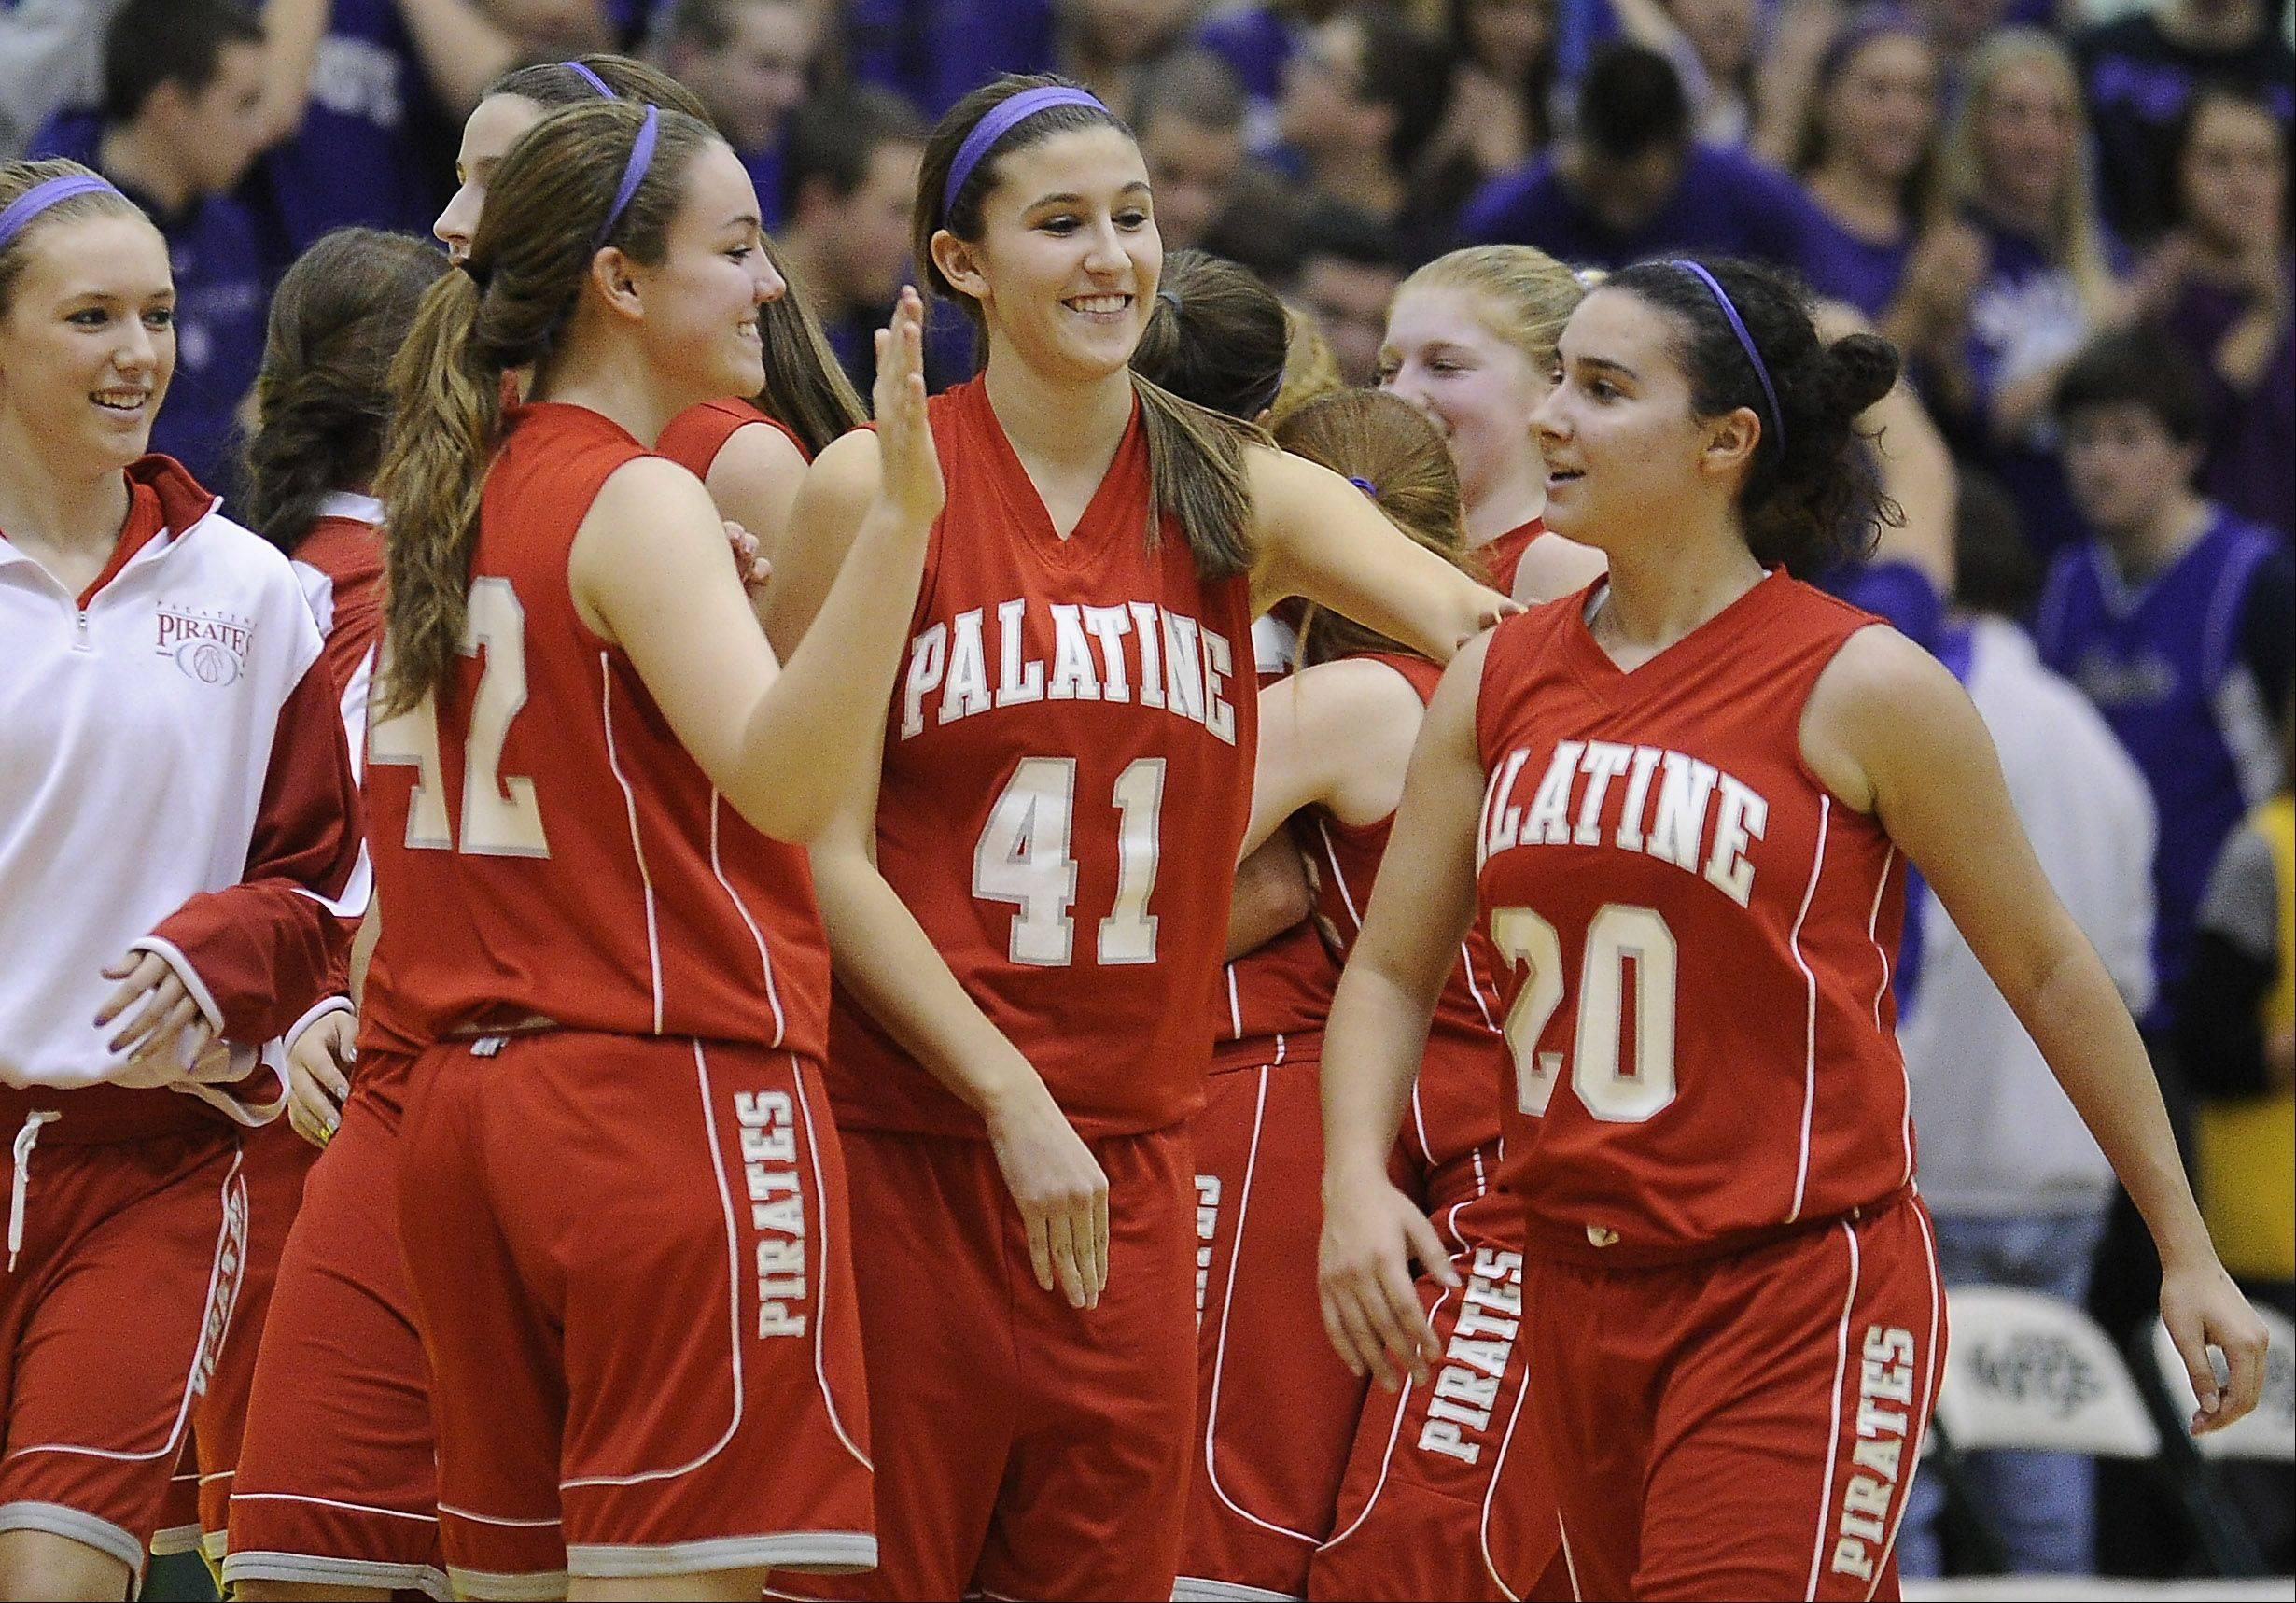 Defense serves Palatine